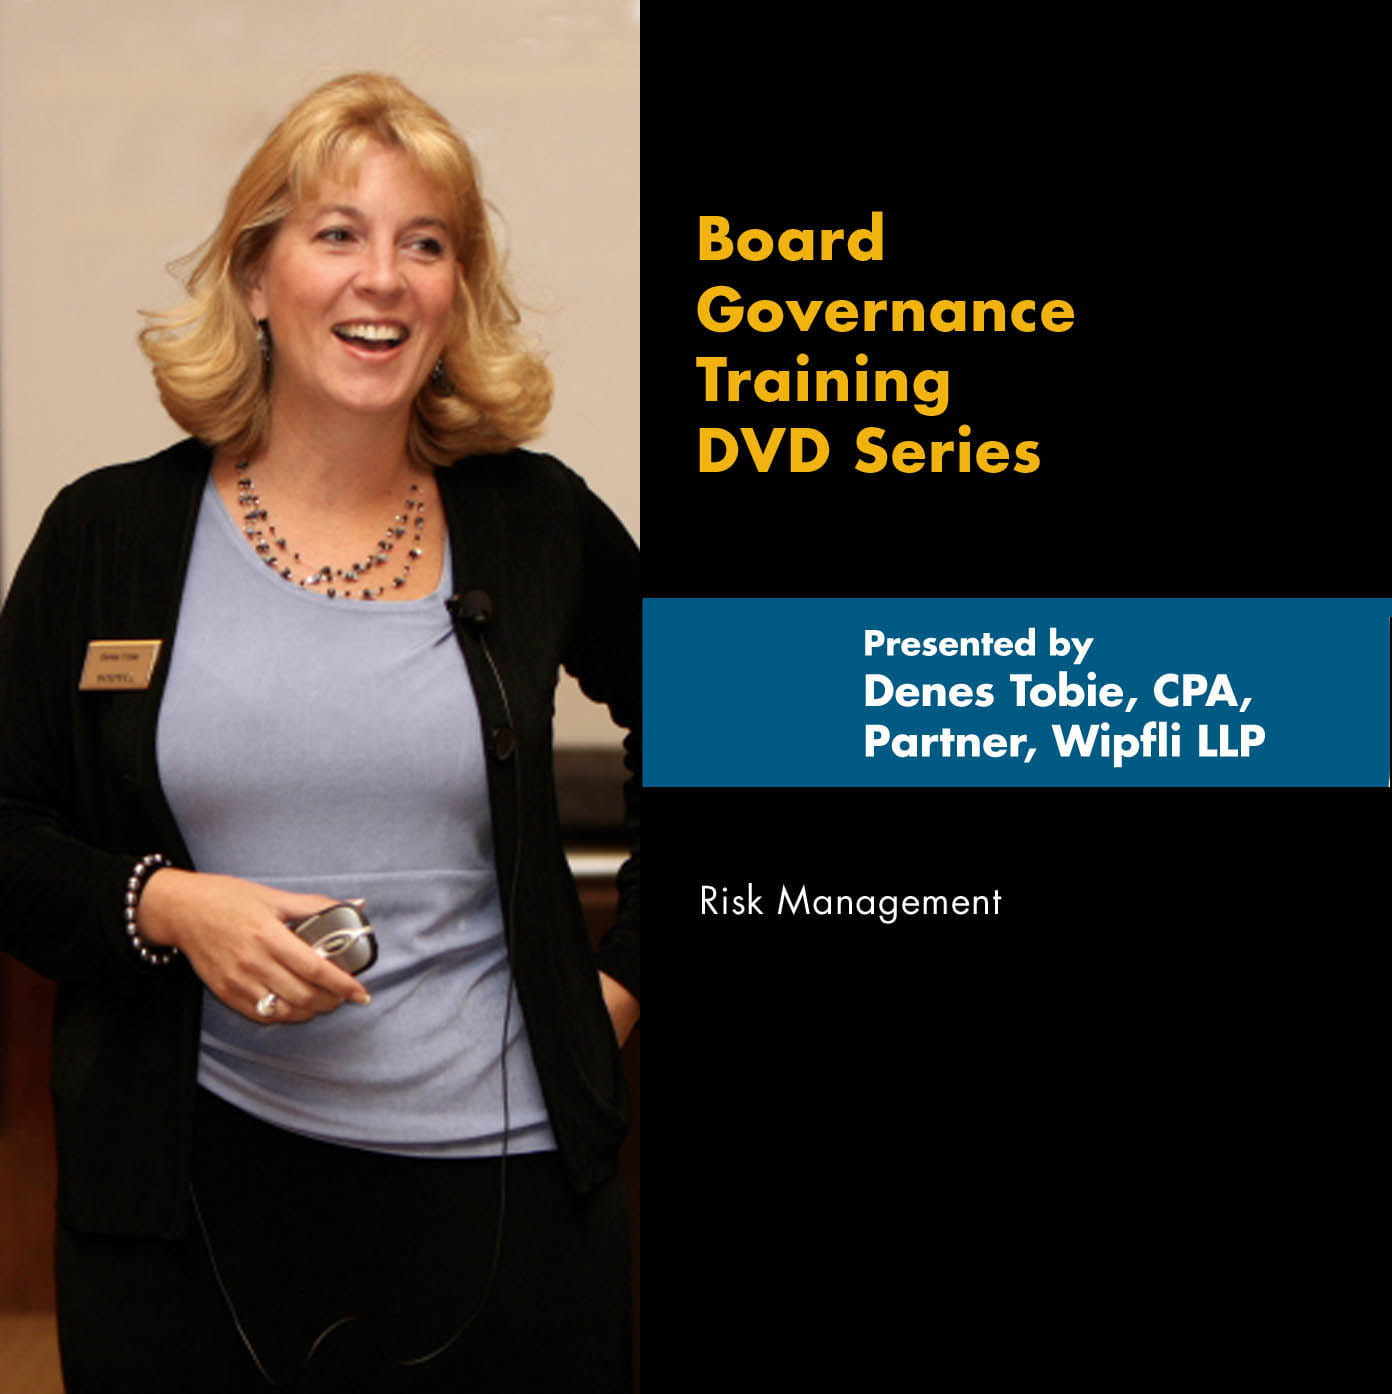 Video: Board Governance Training DVD Series